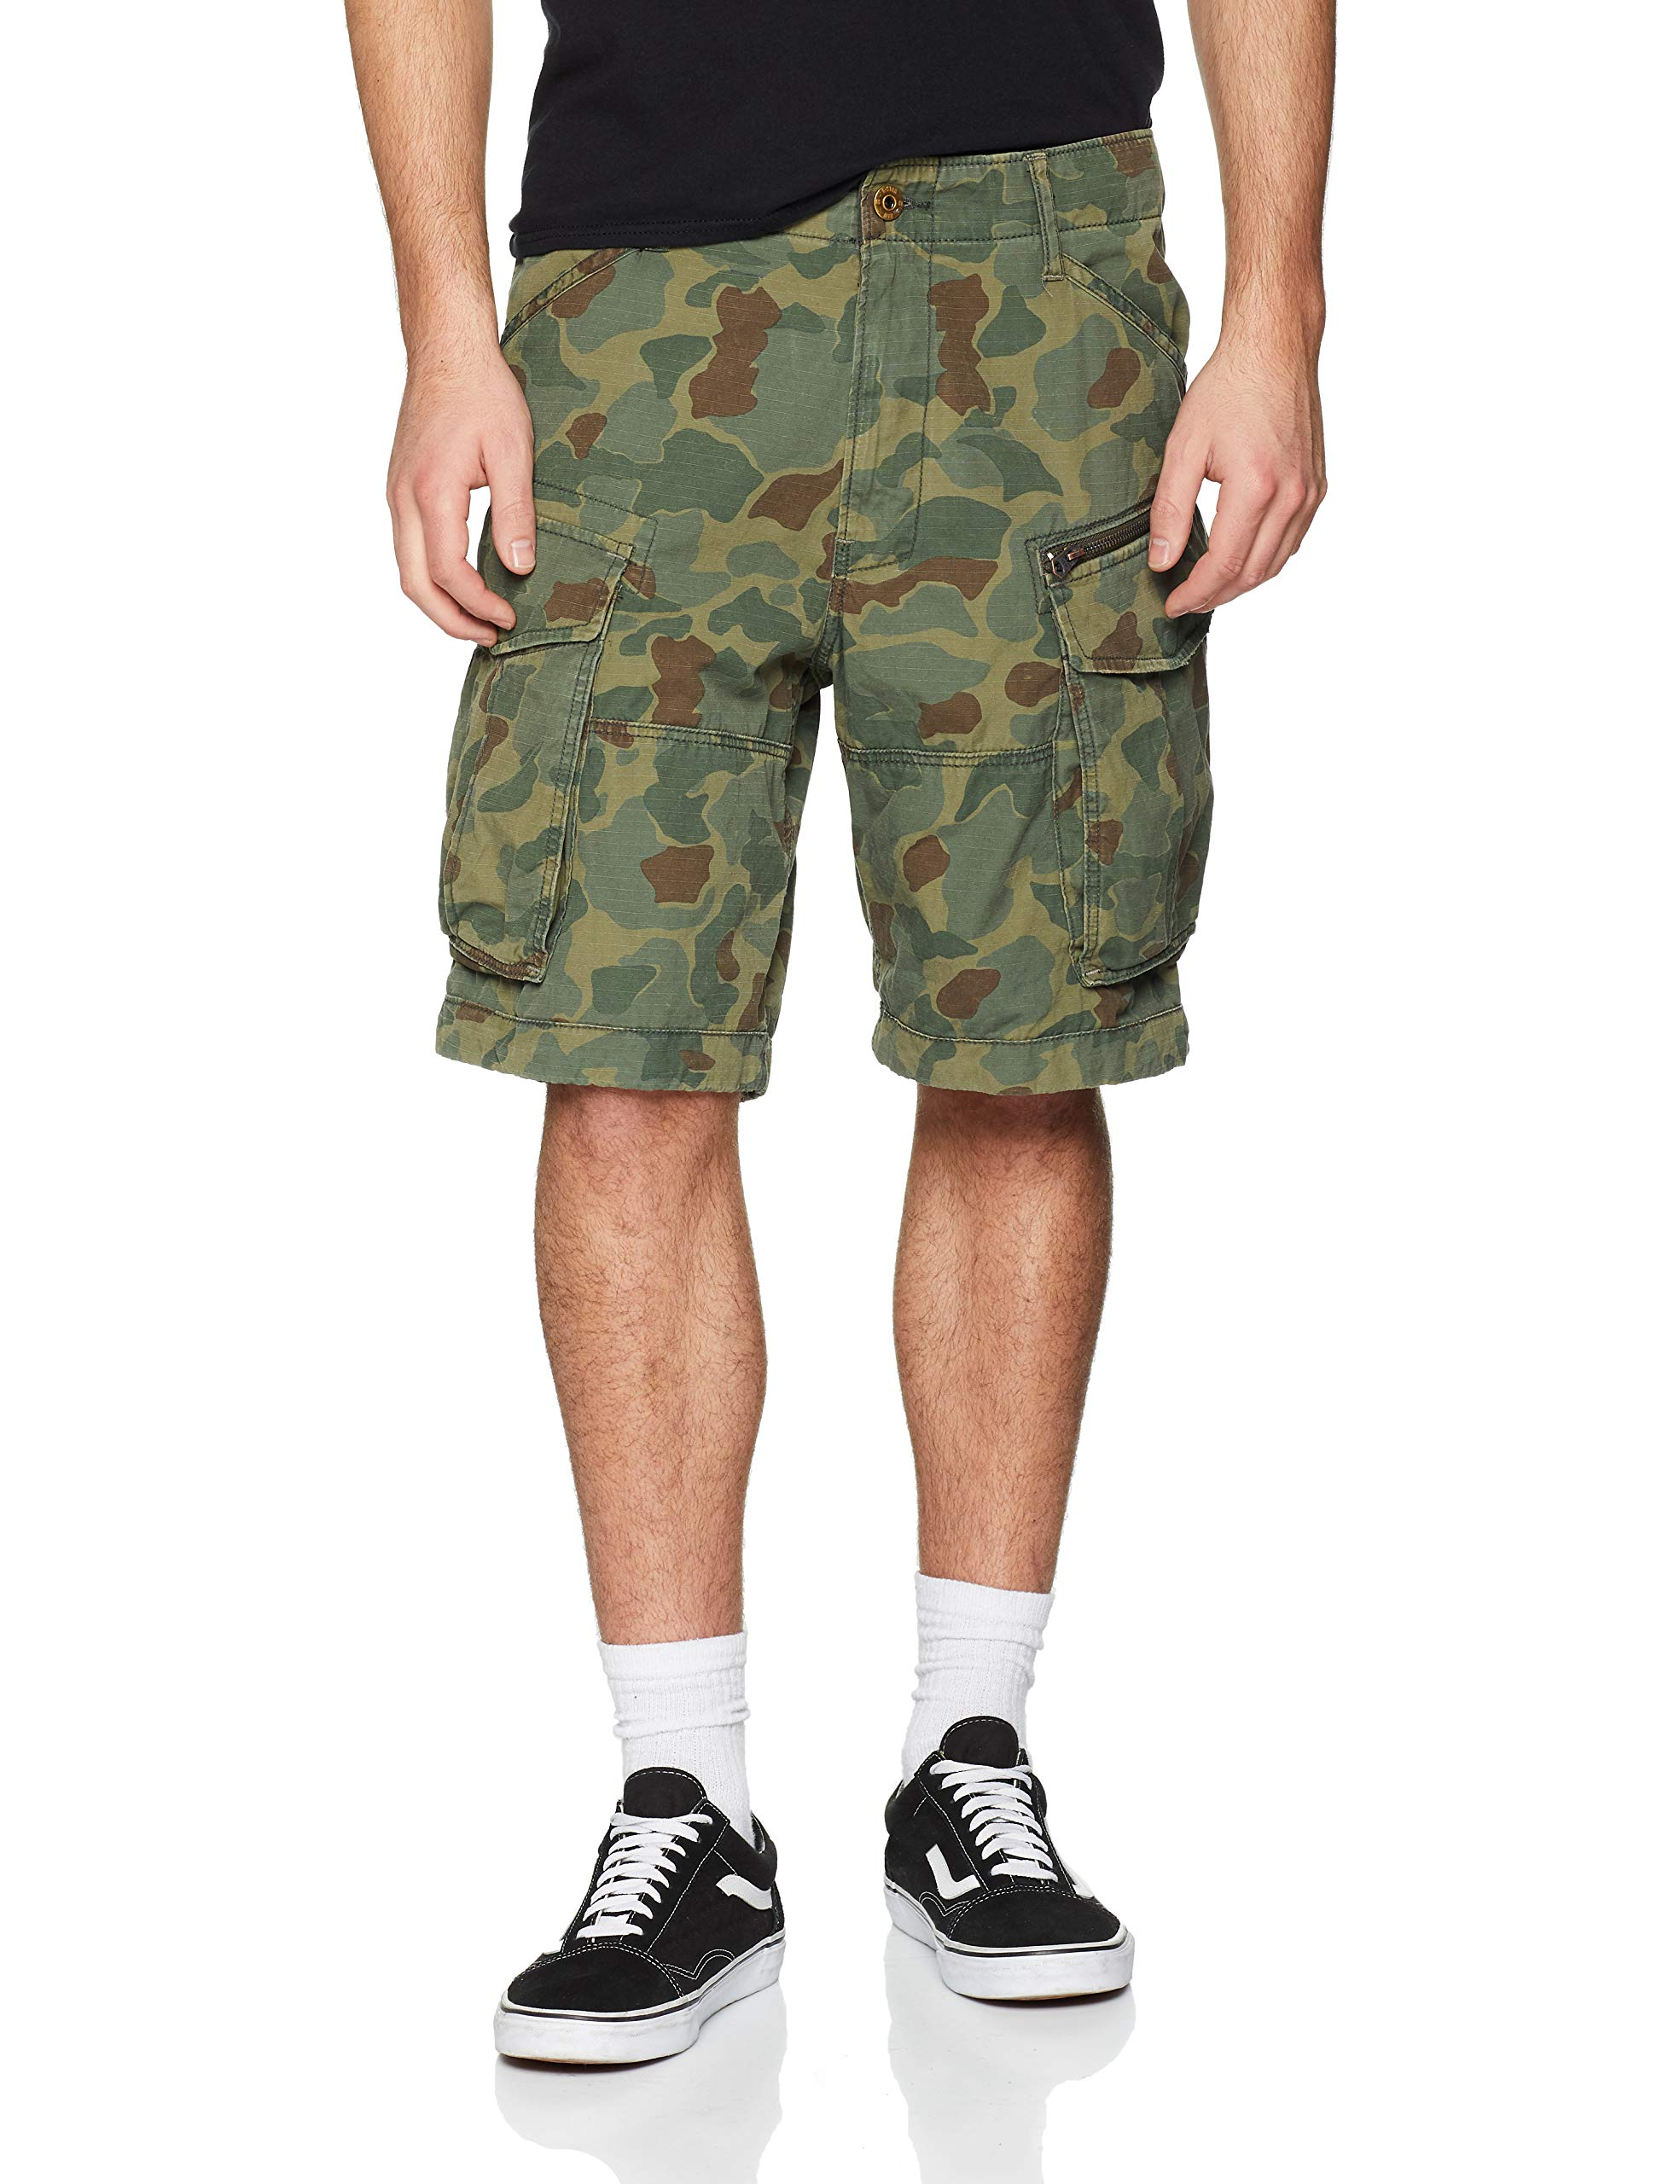 battle Green star G A055W33taille Rovic 12 ShortsNoirsage Ao Raw Zip Relaxed Fabricant33wHomme nOPk80wX